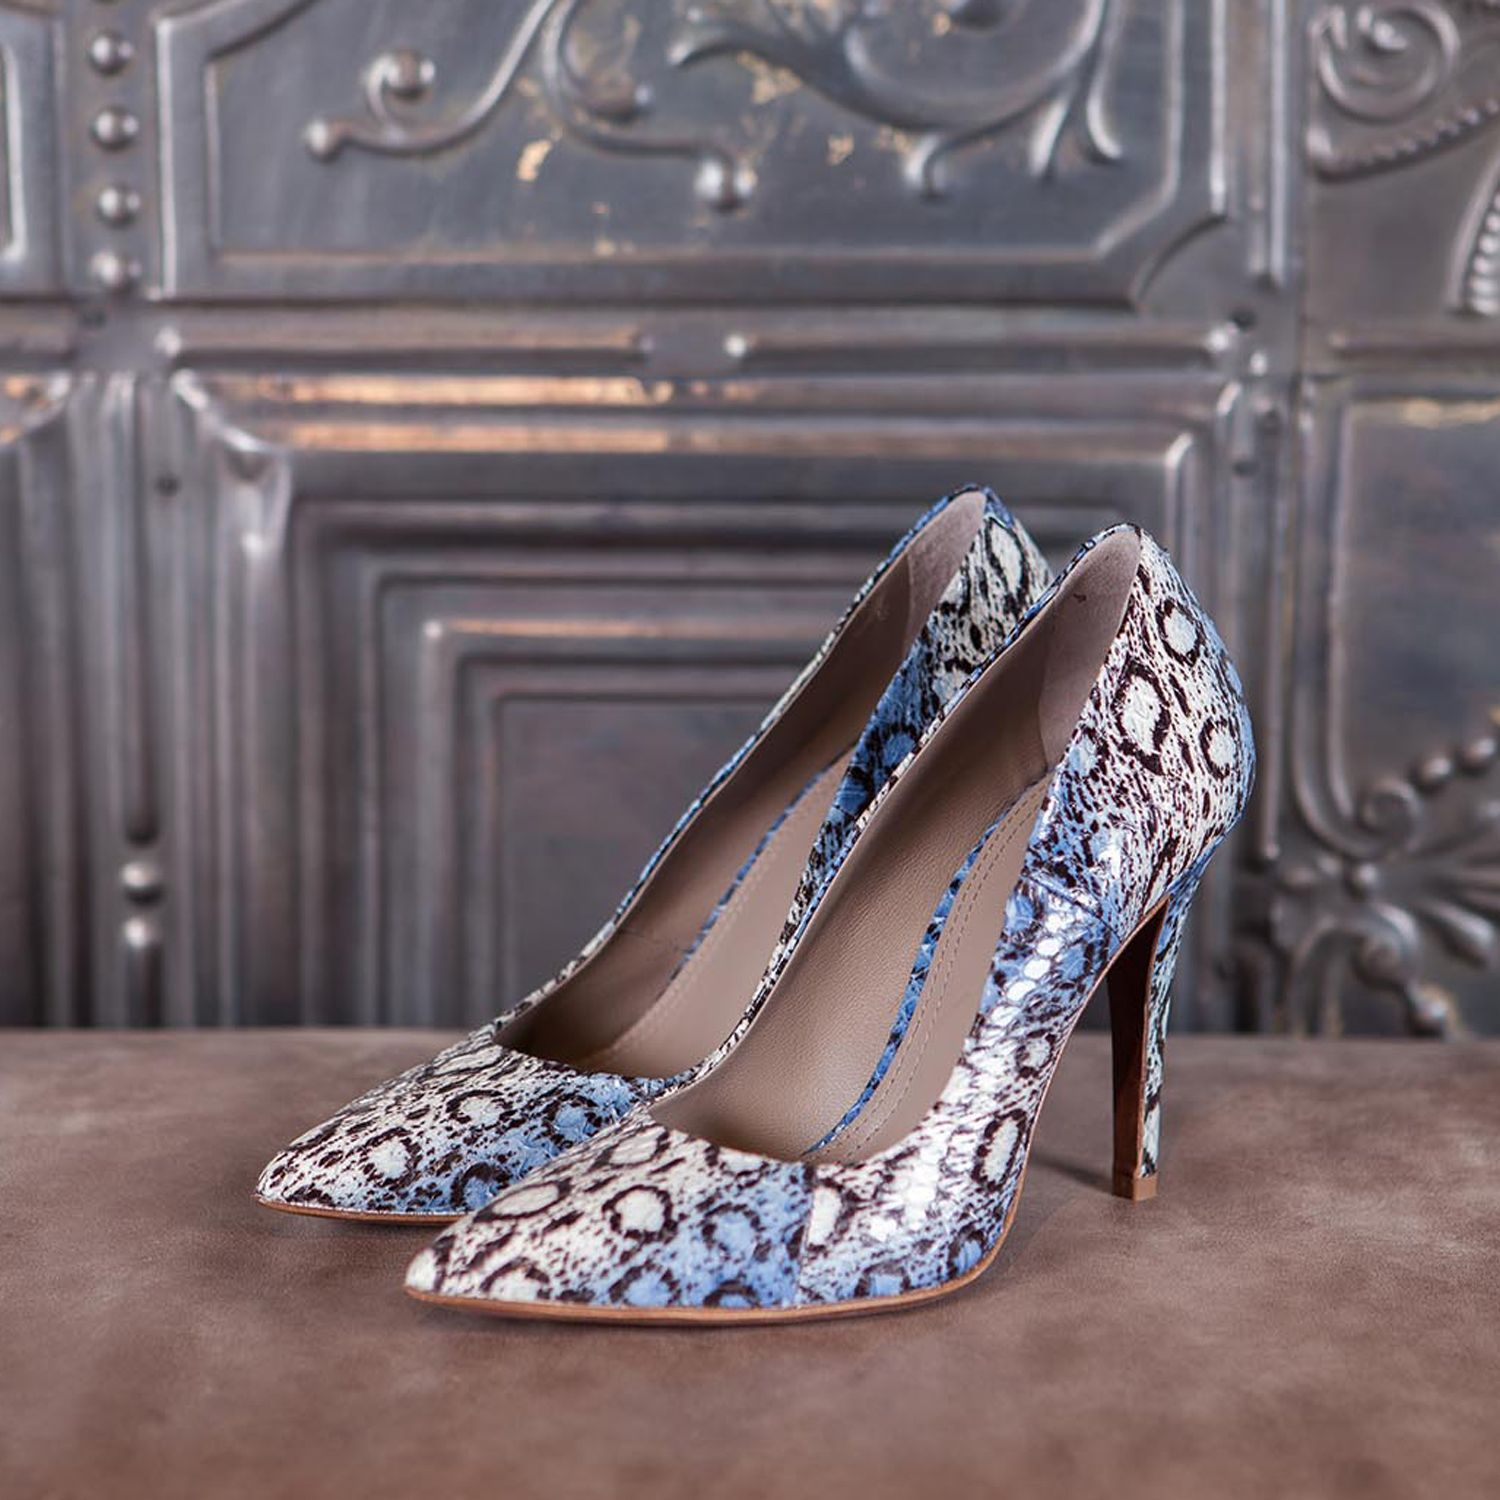 MANHATTAN - blu elaphe  #altiebassi #autumn #winter #italianshoes